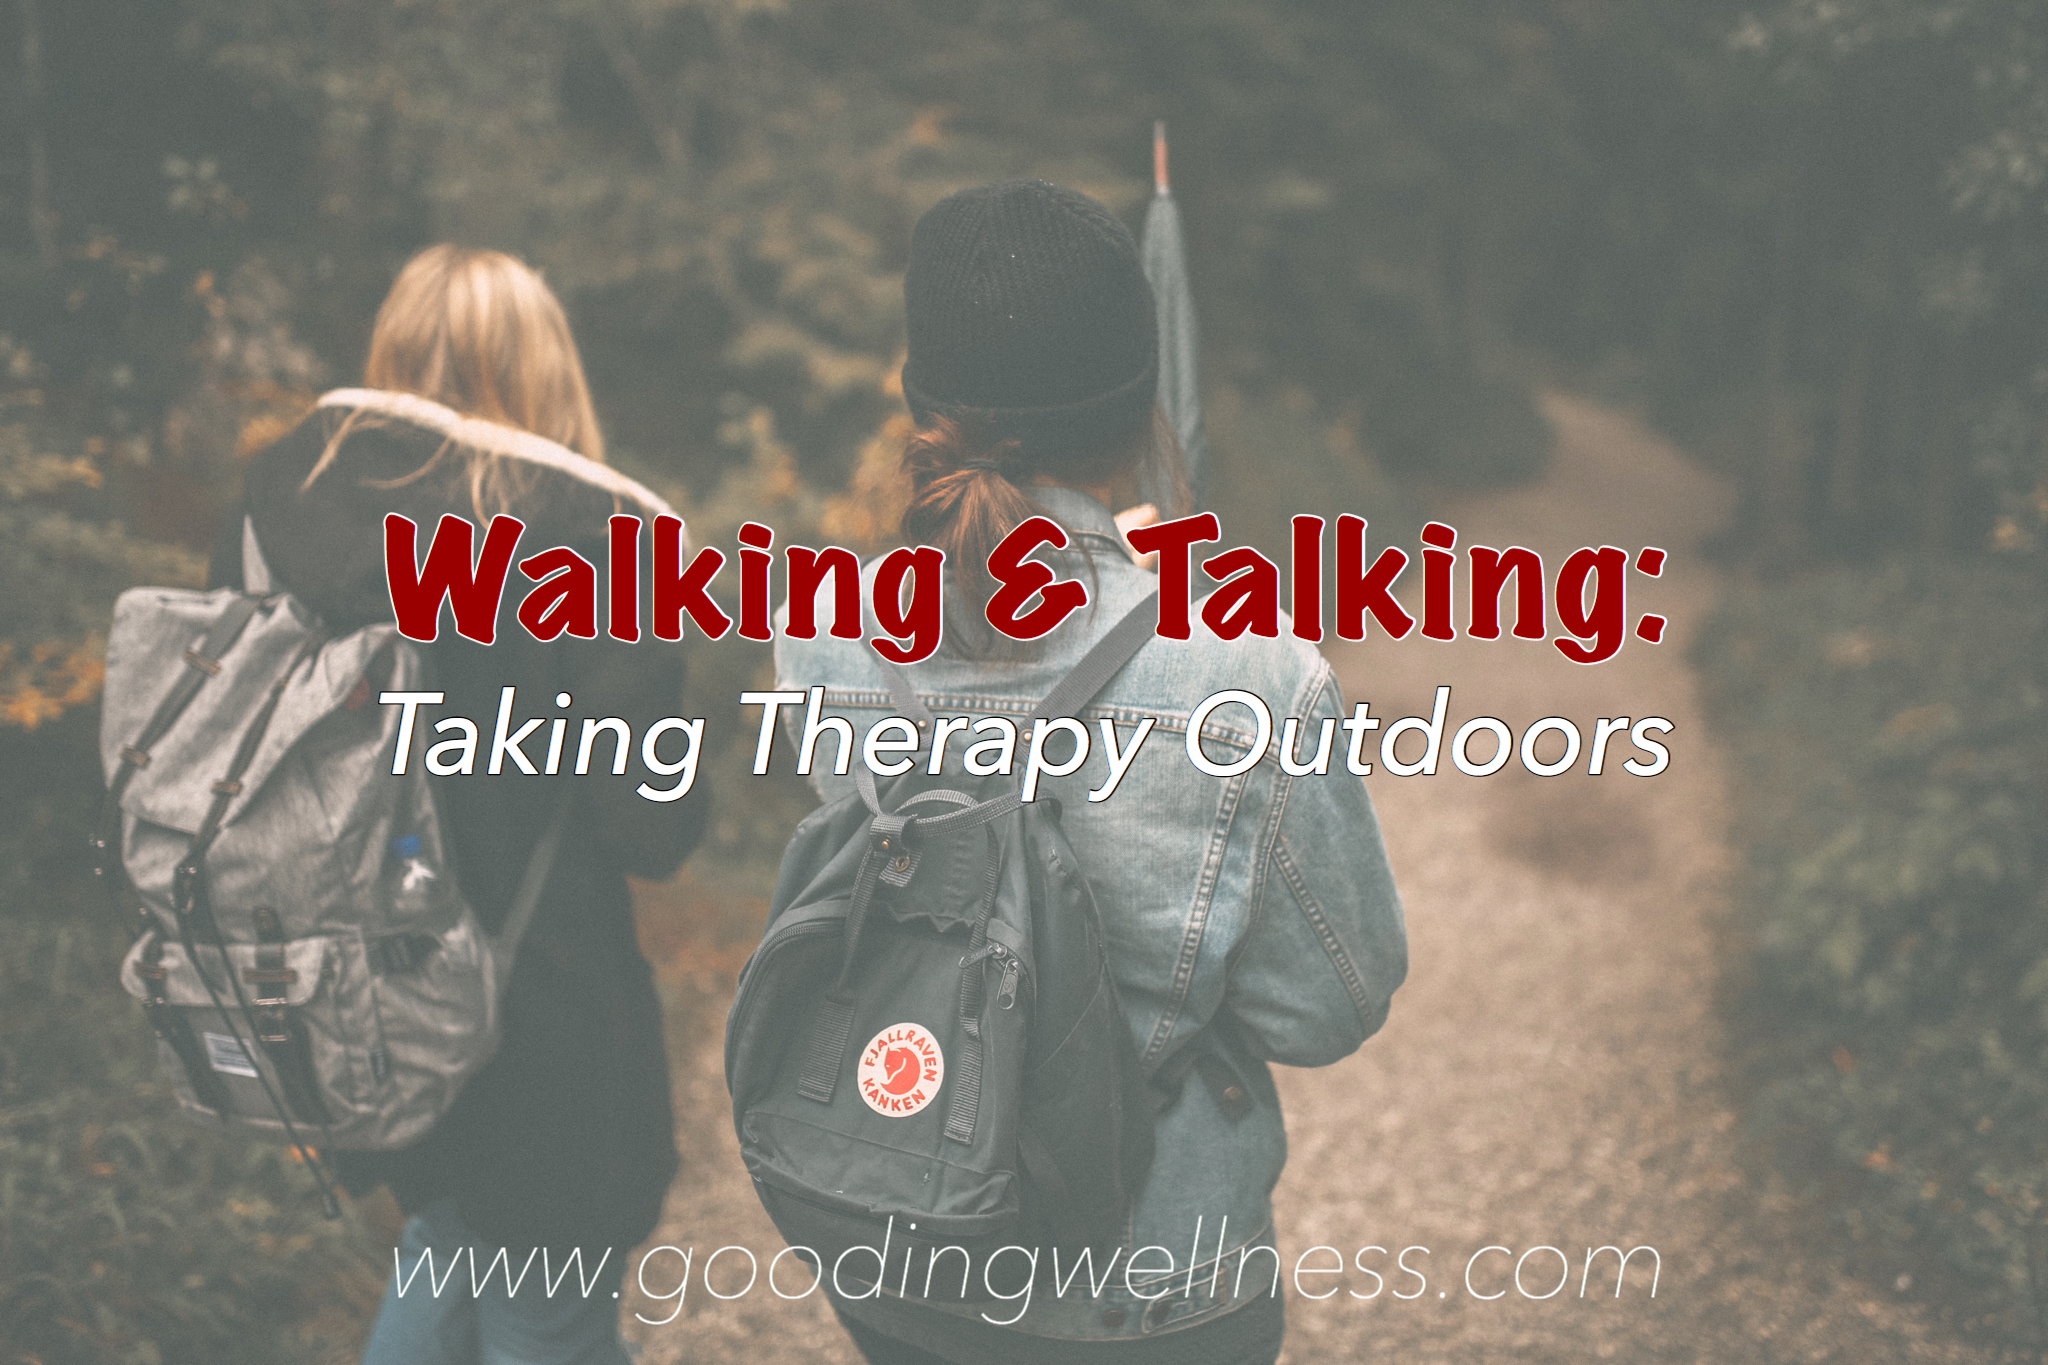 Walking & Talking